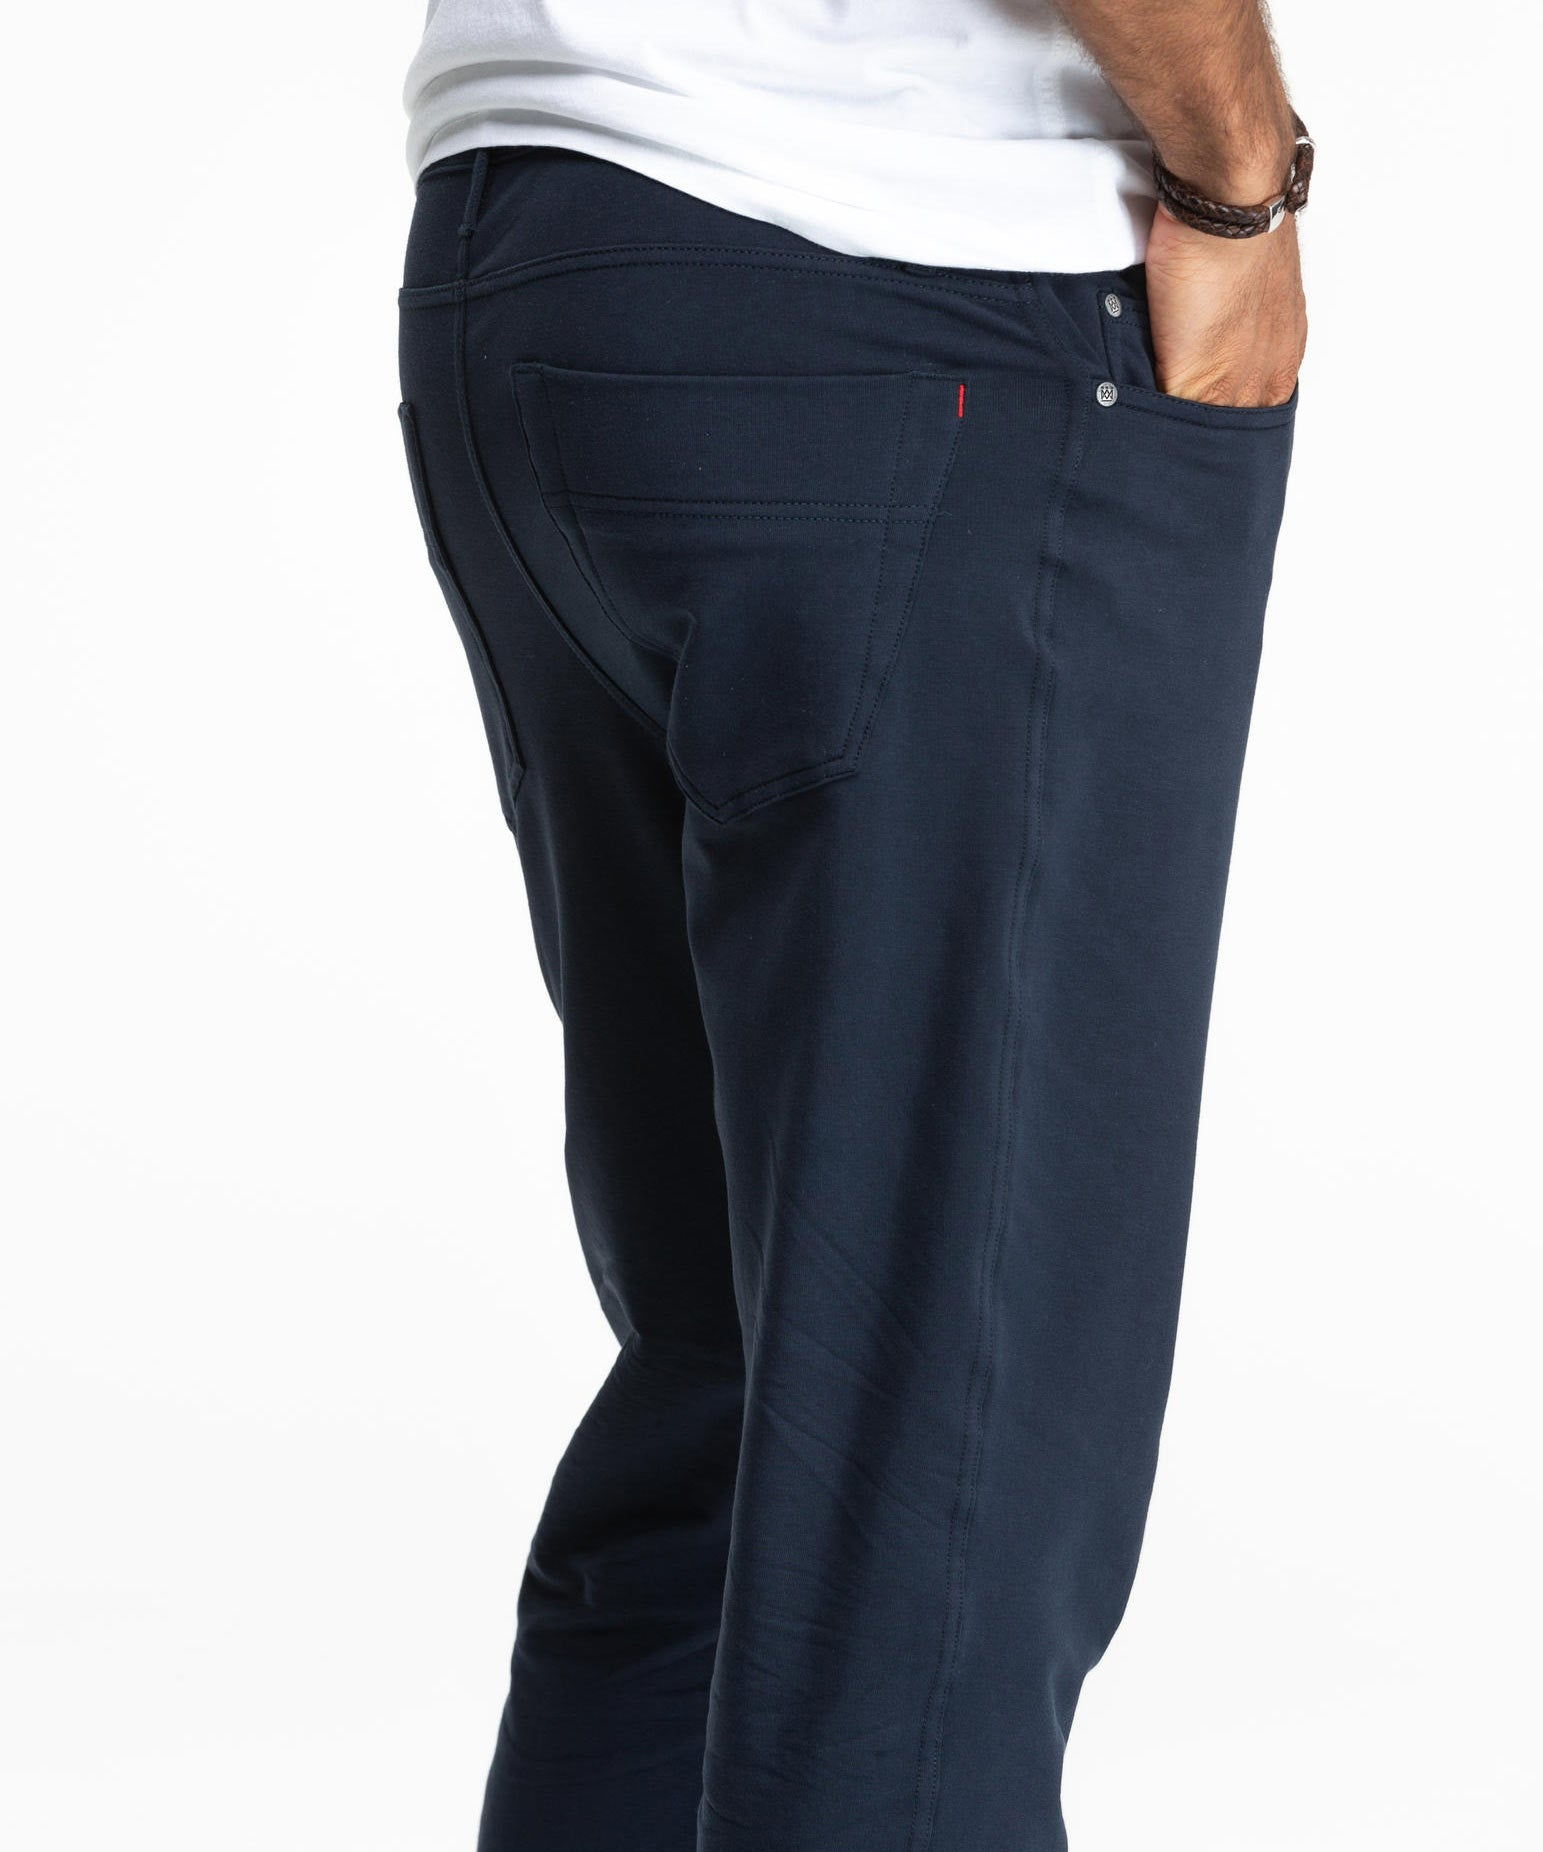 SWET Tailor Stretch All-In 5-Pocket Pant